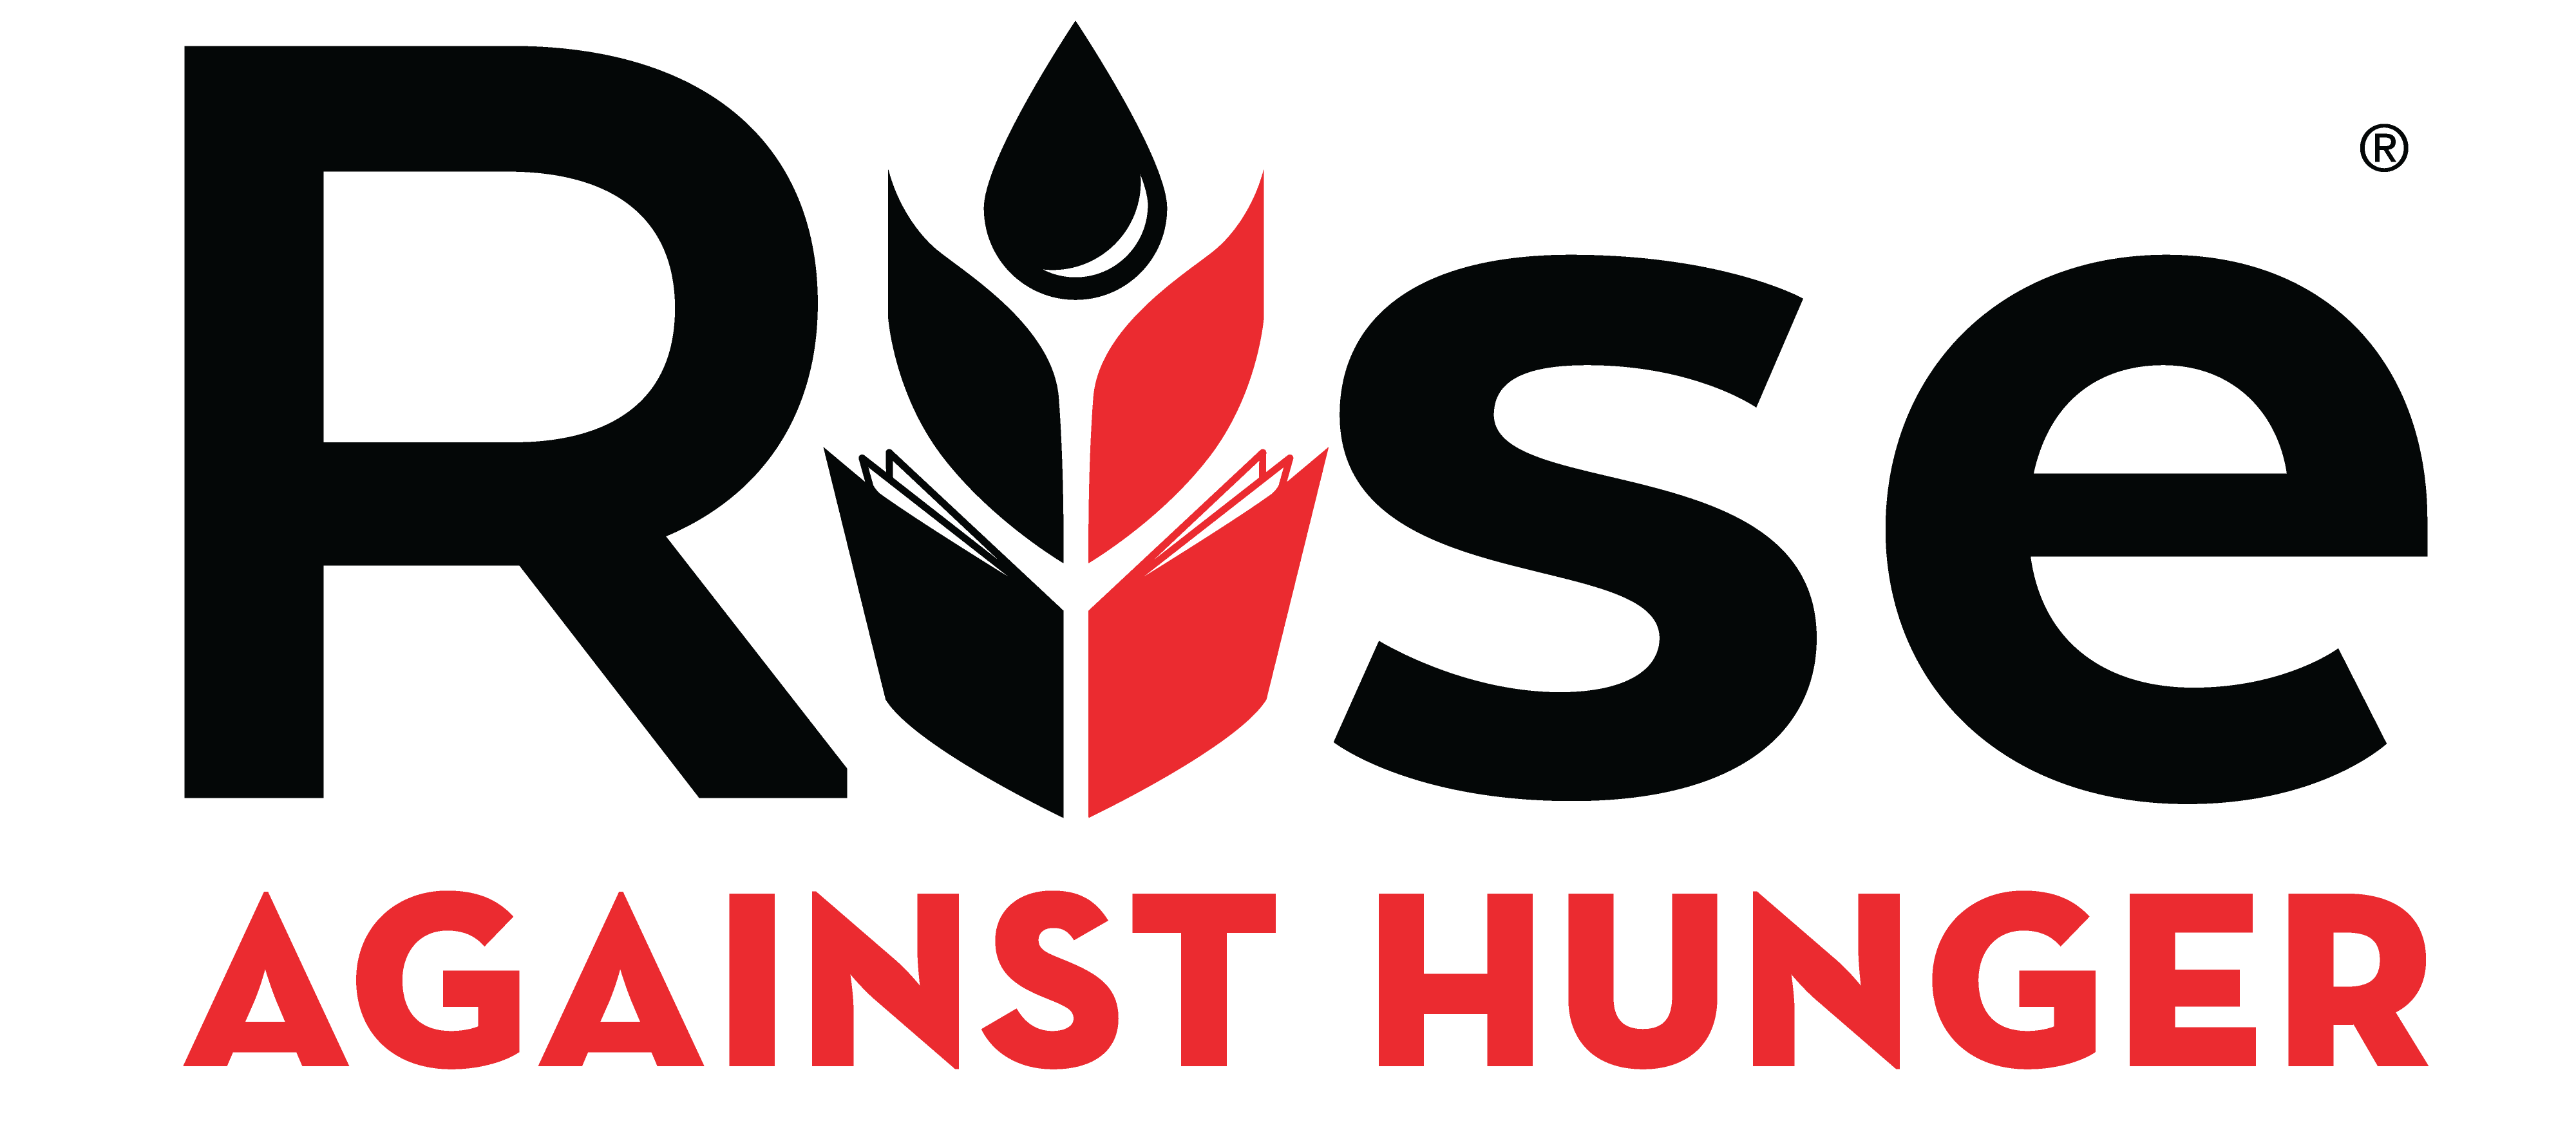 Rise Against Hunger - Wikipedia